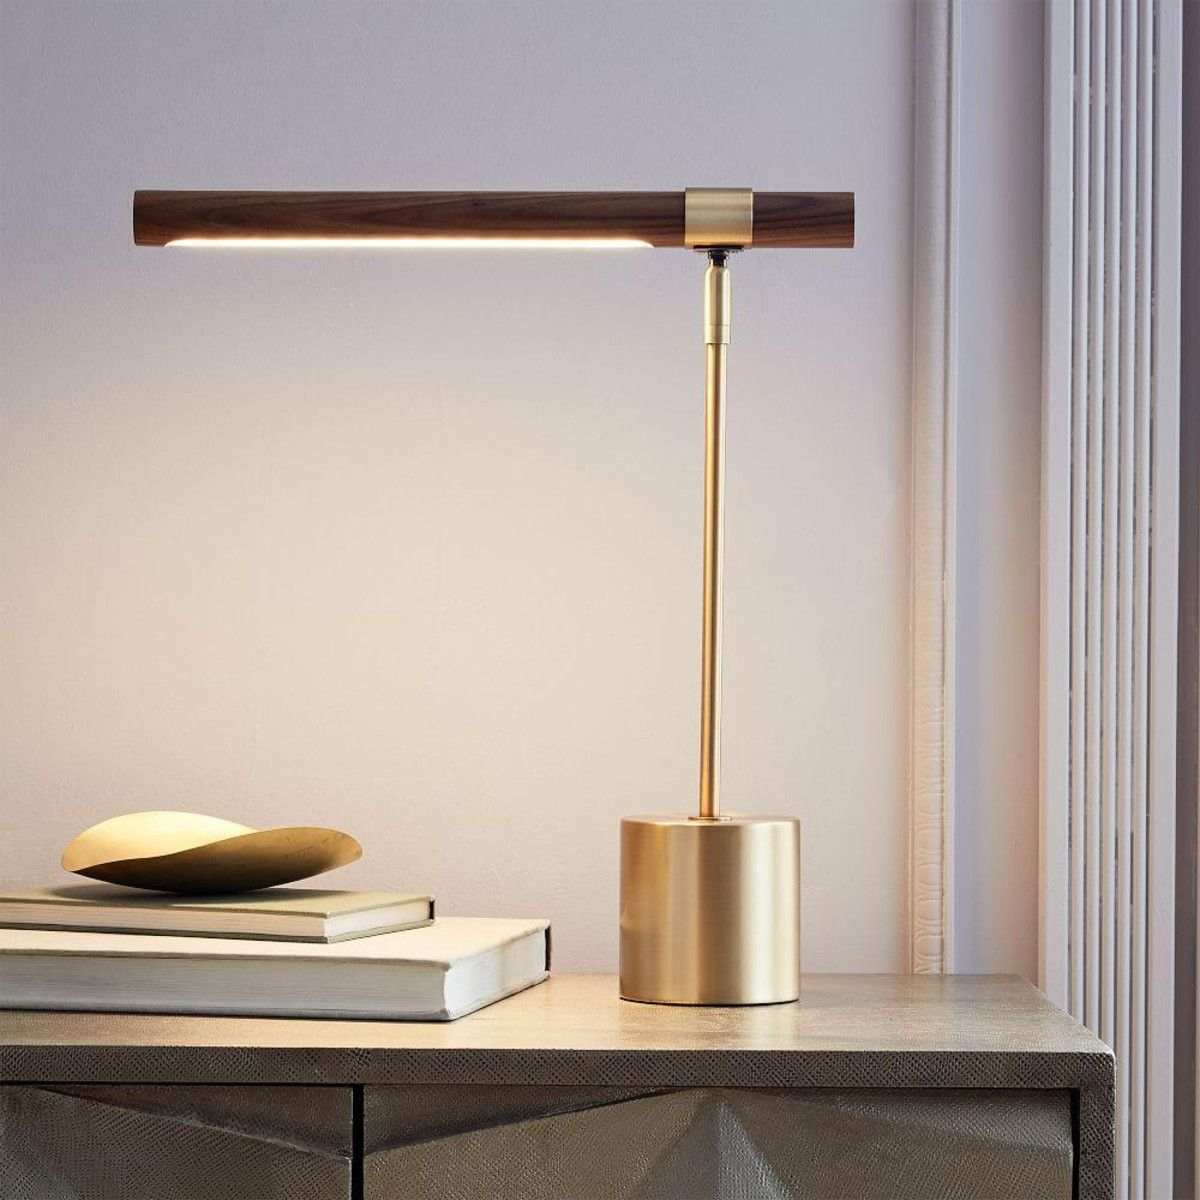 Linear Wood Led Table Lamp West Elm Uk Table Lamp Wood Table Lamp Design Led Table Lamp